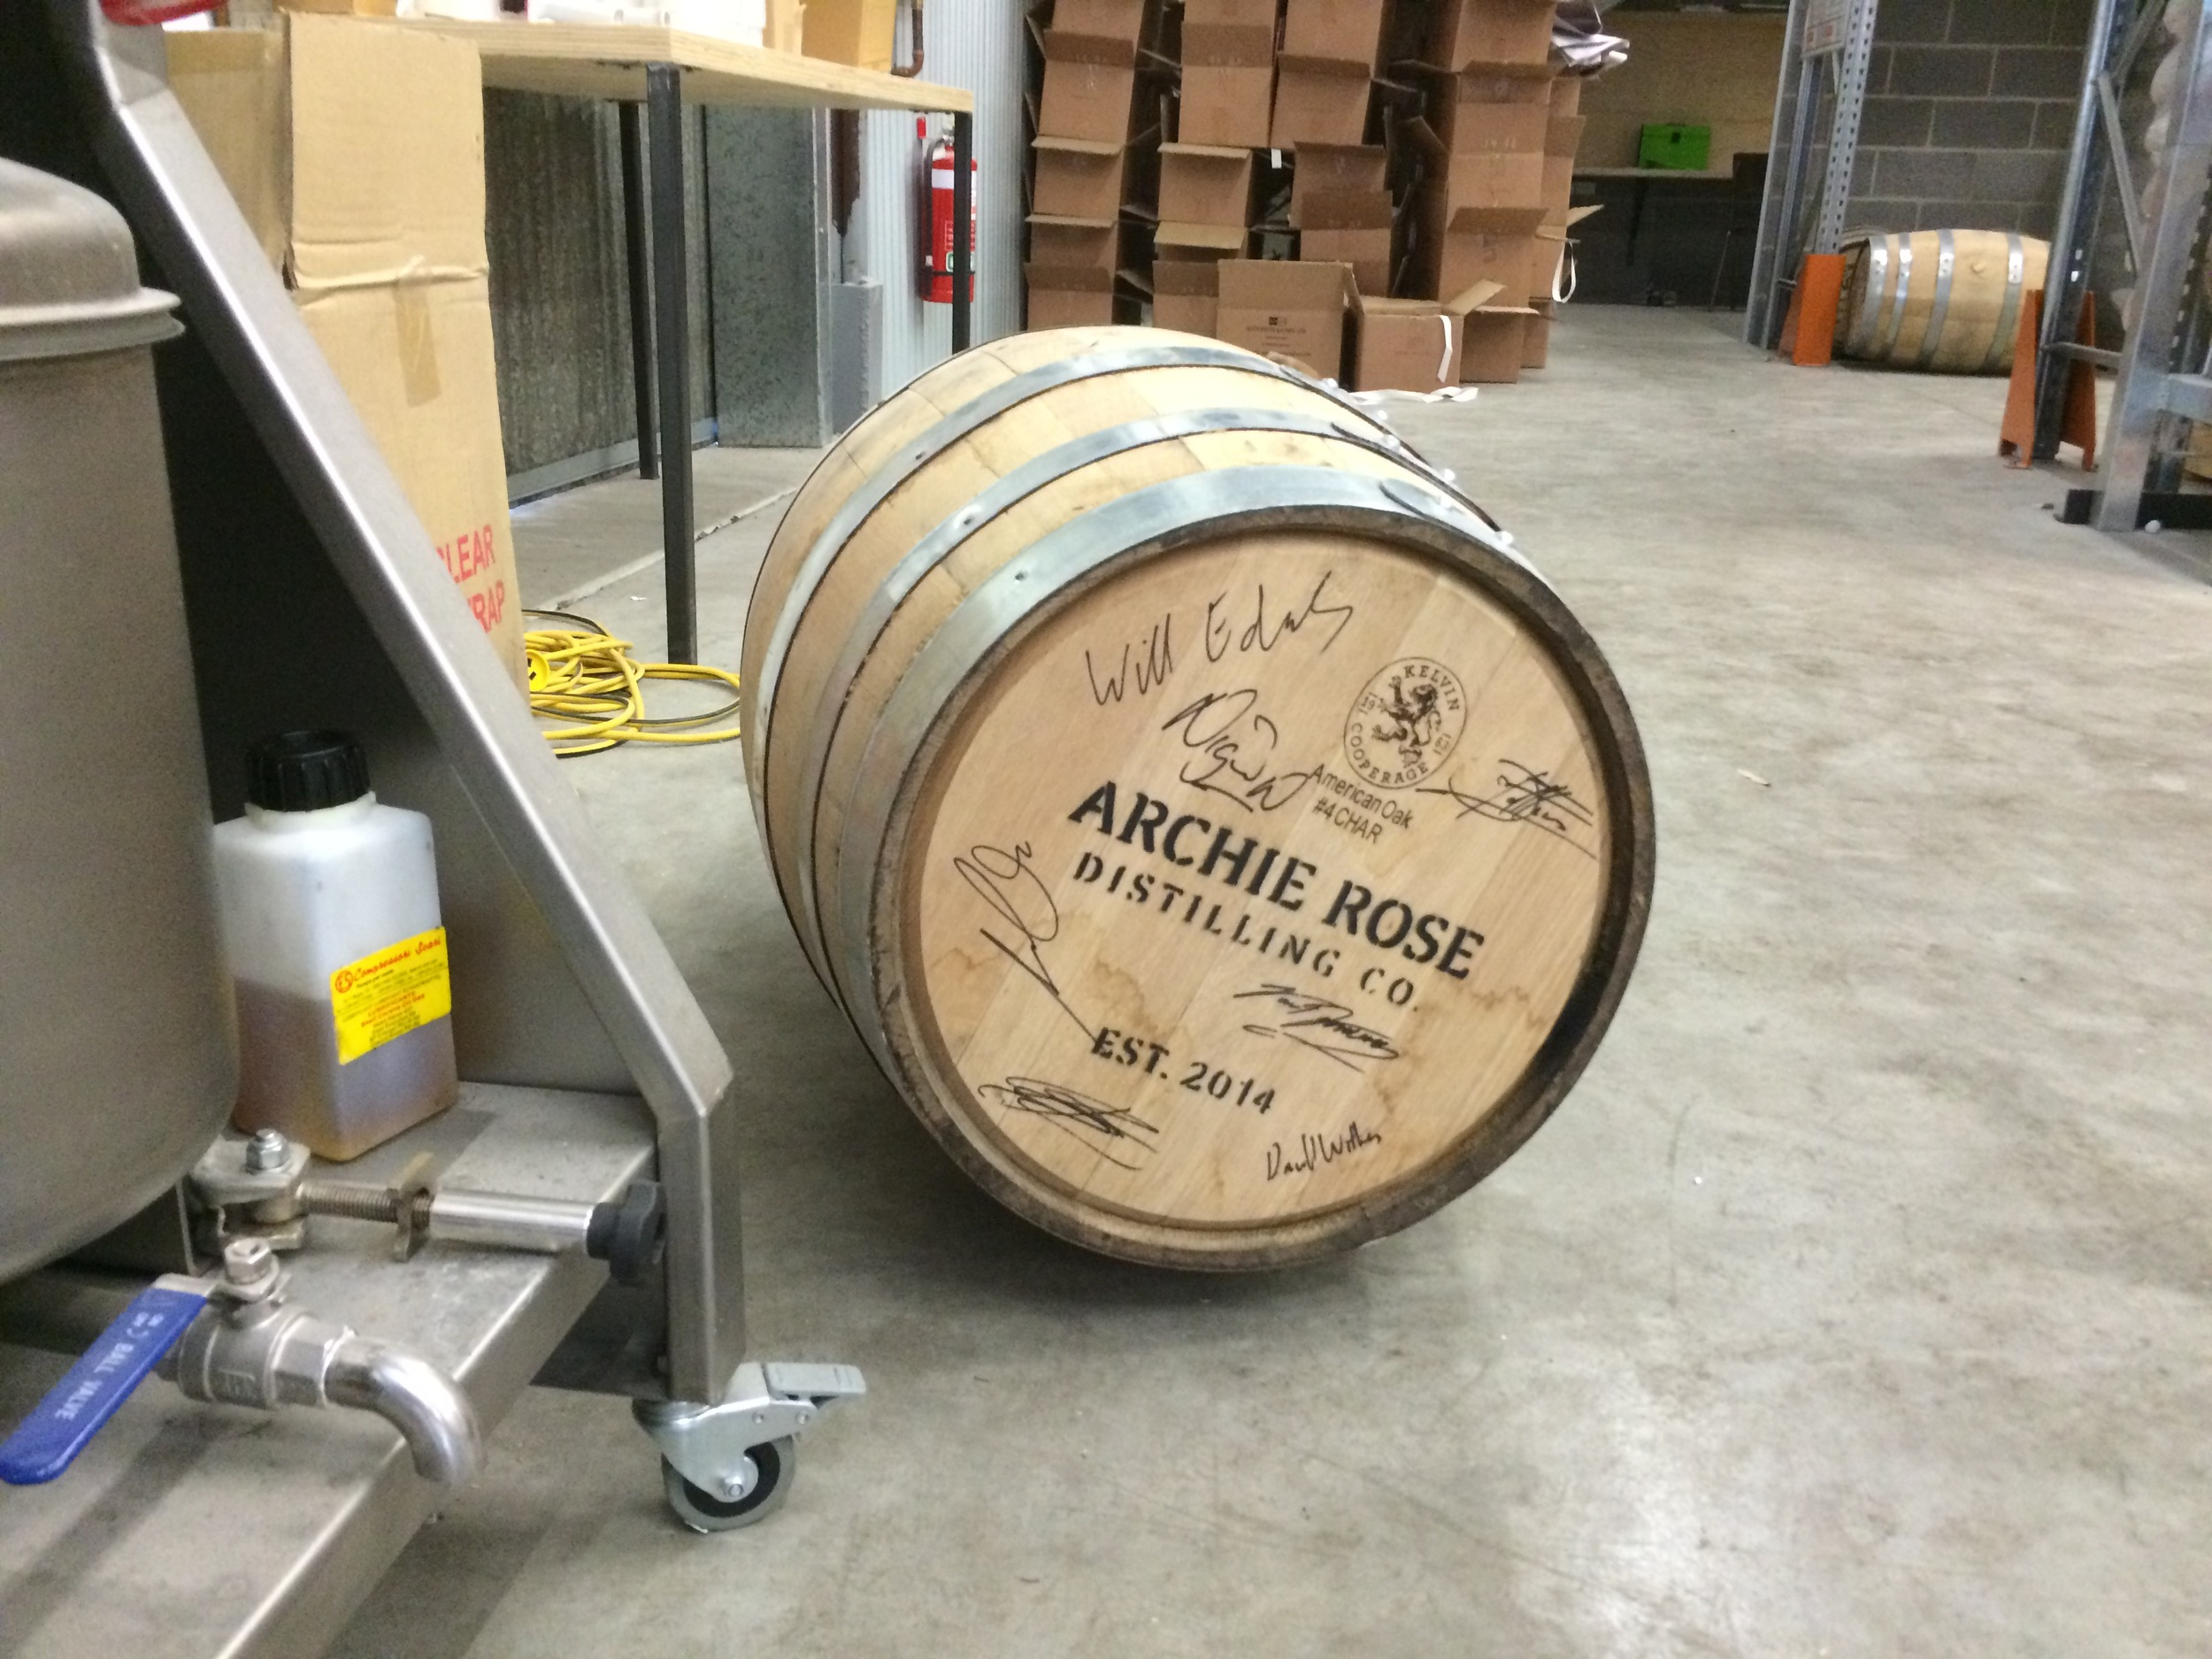 Barrel #1 as signed by the crew at Archie Rose, and no, it's not for sale.